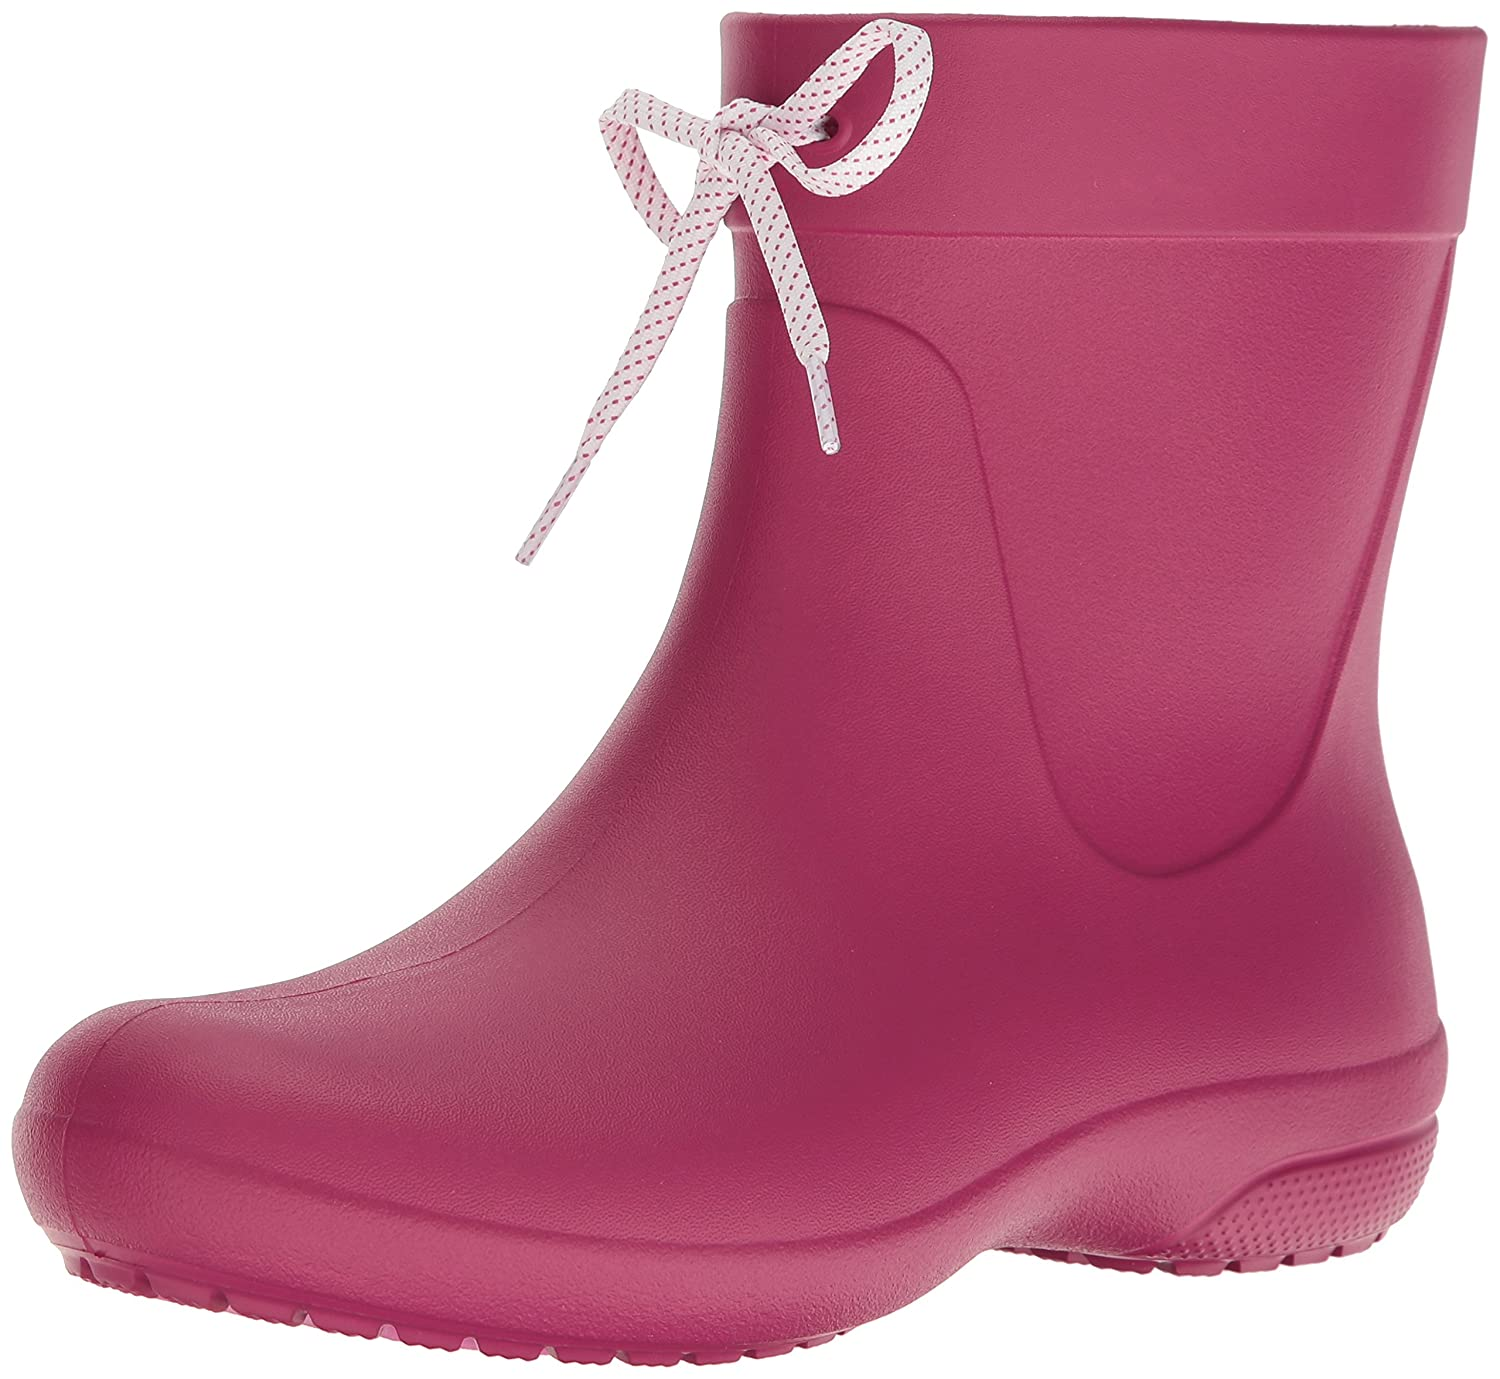 Crocs Boots, Freesail Shorty Shorty Rain Boots, Bottes Femme Rose (Berry) (Berry) a0bc339 - www.boatplans.space